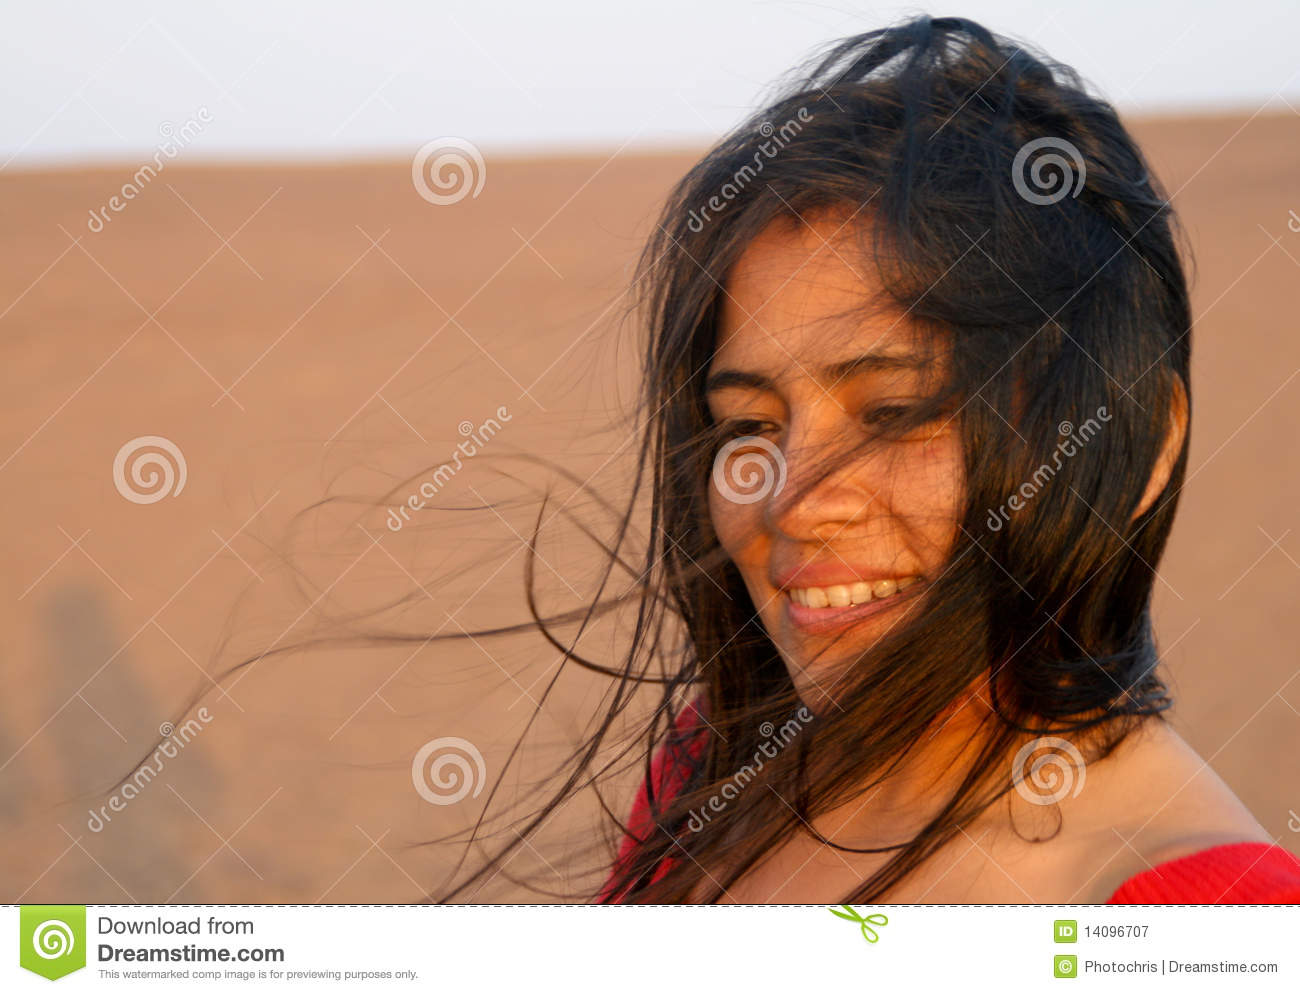 Latin Woman In Wind Royalty Free Stock Photography Image